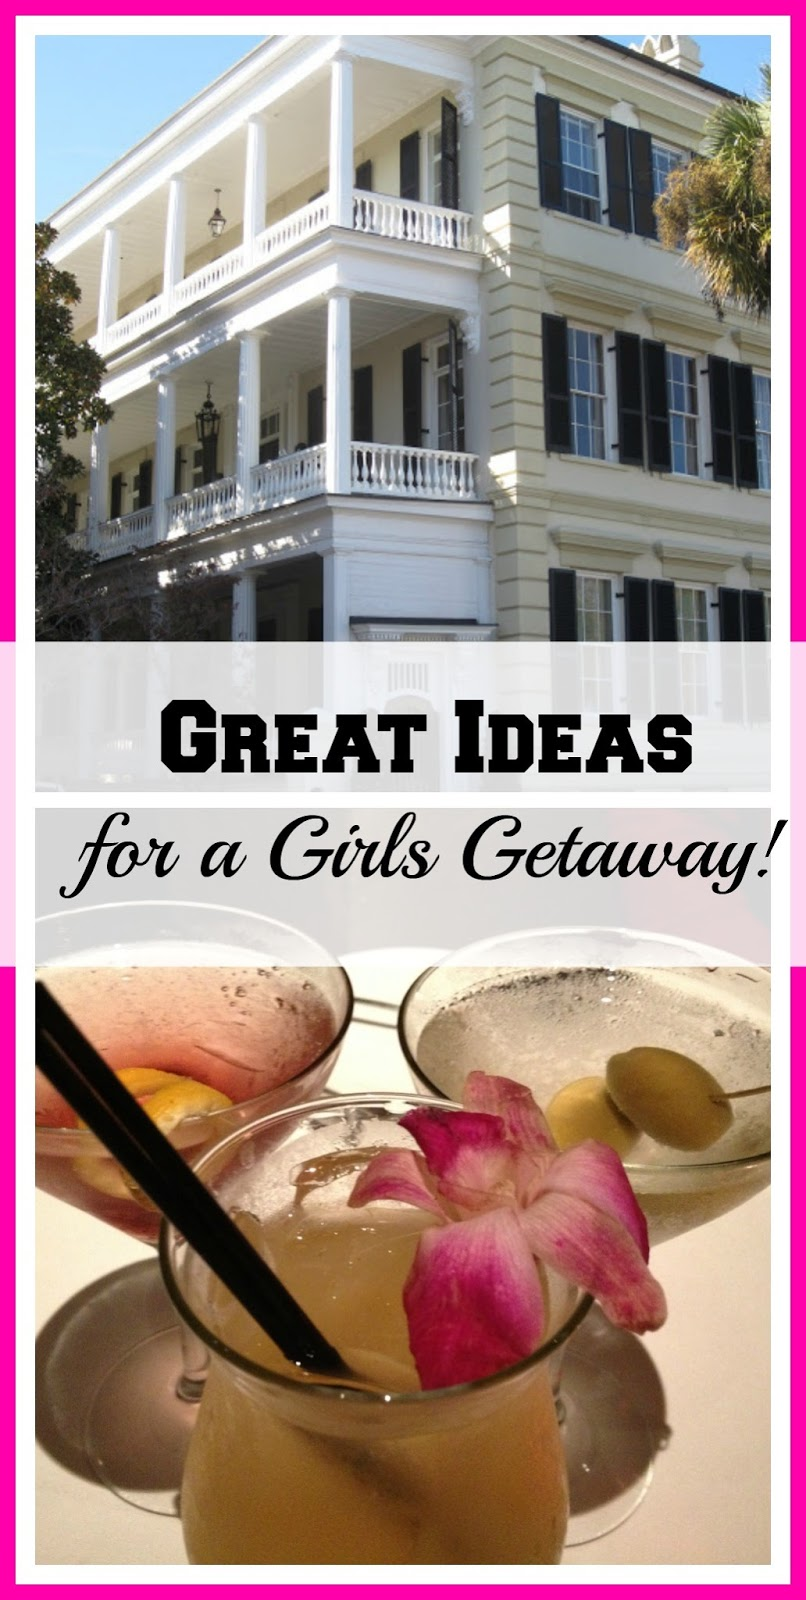 Great Ideas for a Girls Getaway